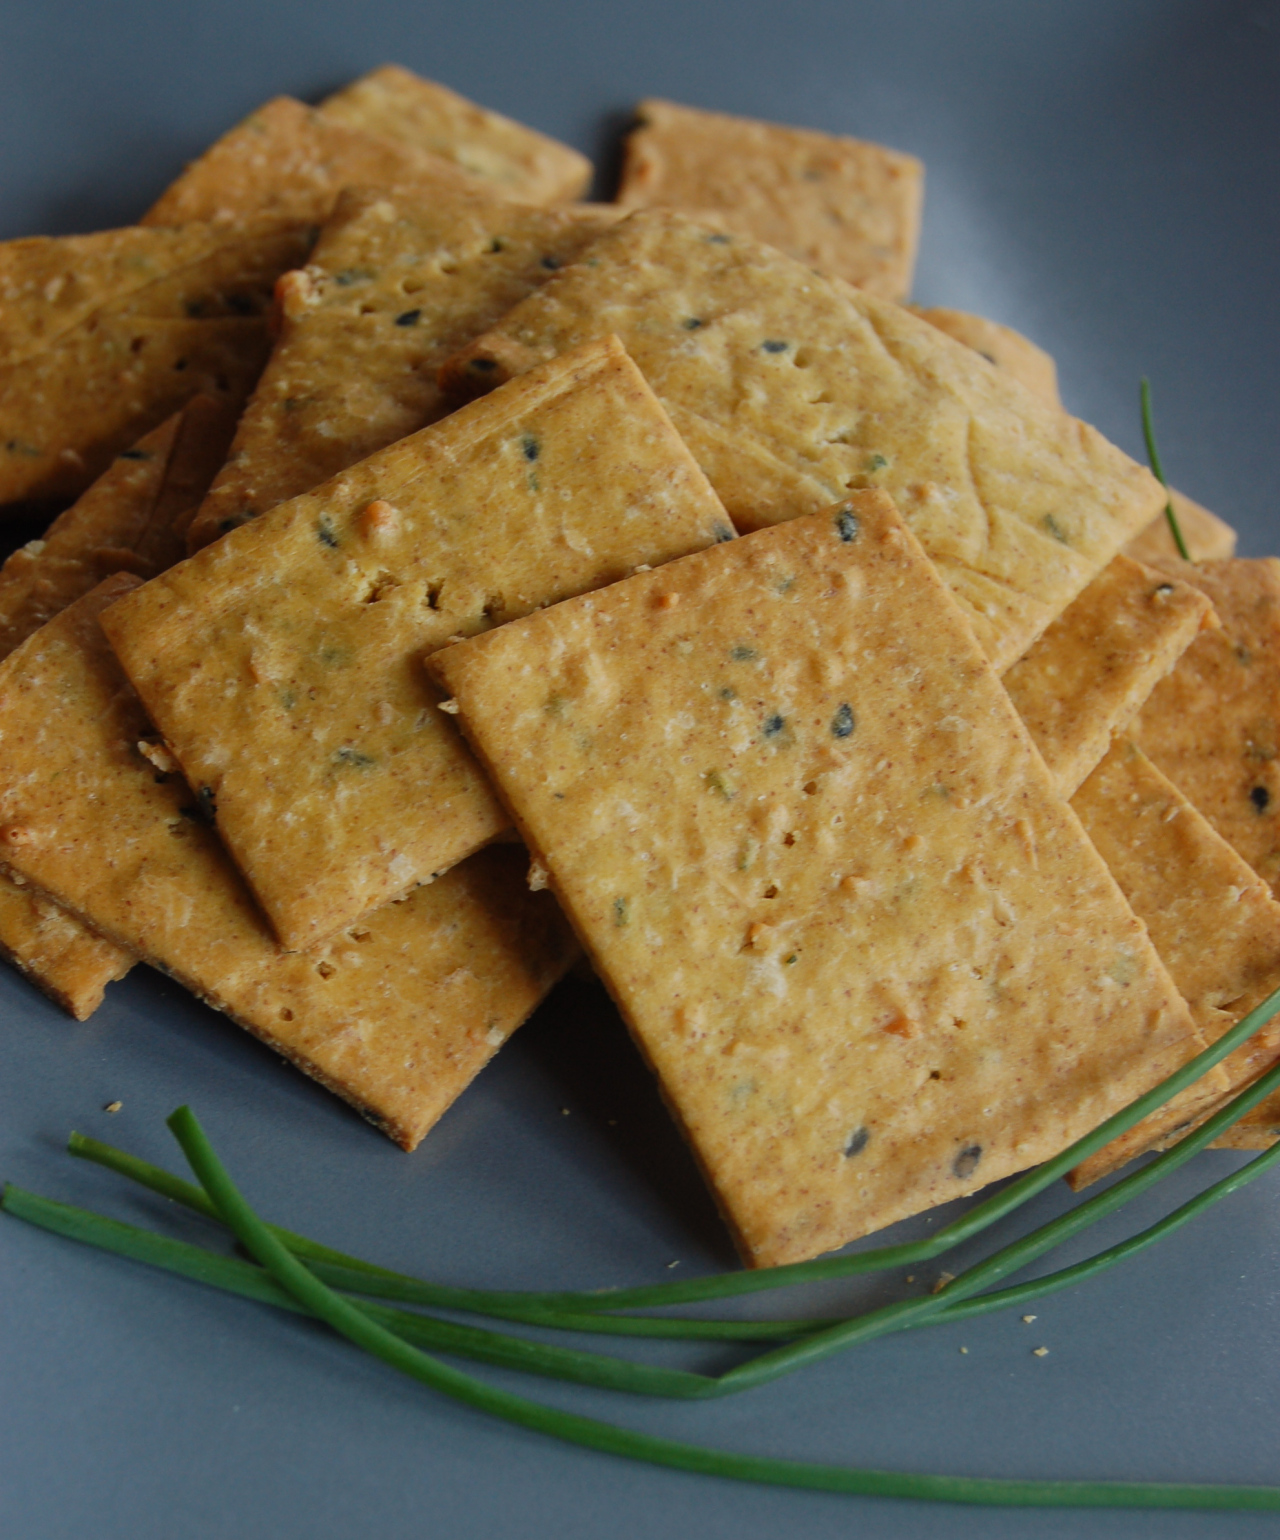 Delicious chikpea crackers ready for snacking